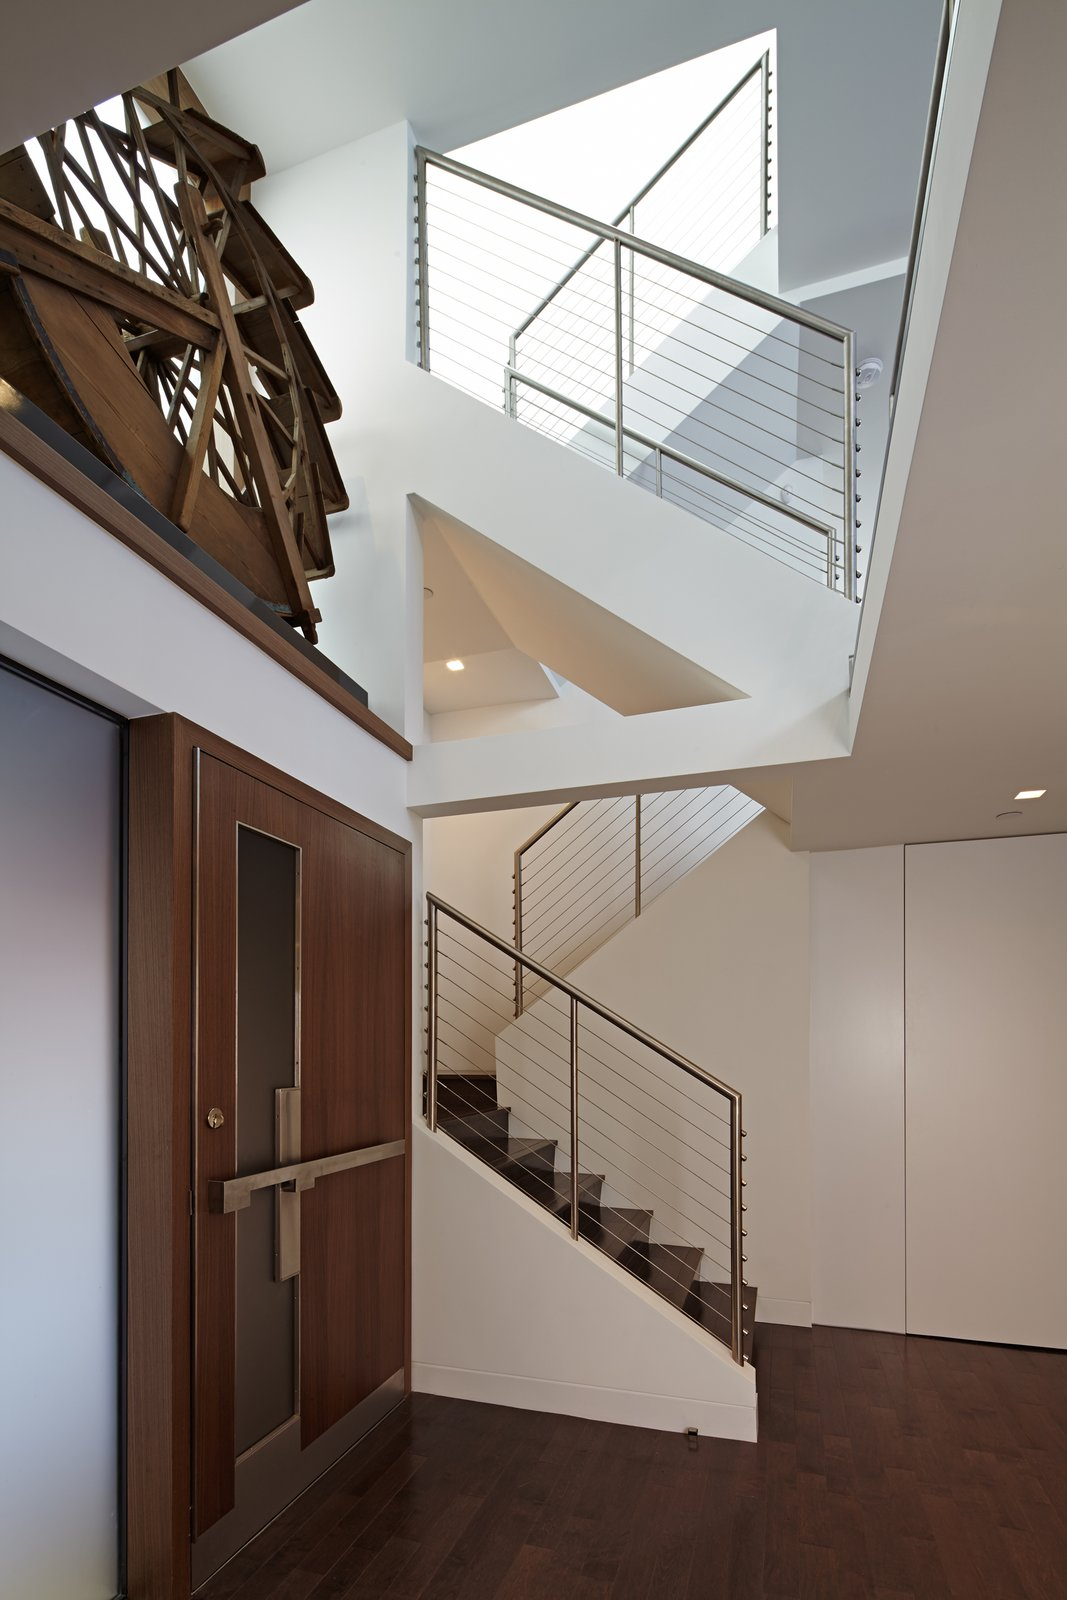 Inside, a ledge above the door holds an antique water wheel, a notable piece belonging to the Client.  This wheel is backlit with a large window adjacent to it.  Top floor skylights add dramatic light which filters down a multi-tiered staircase.      Perrin Residence by Abramson Teiger Architects